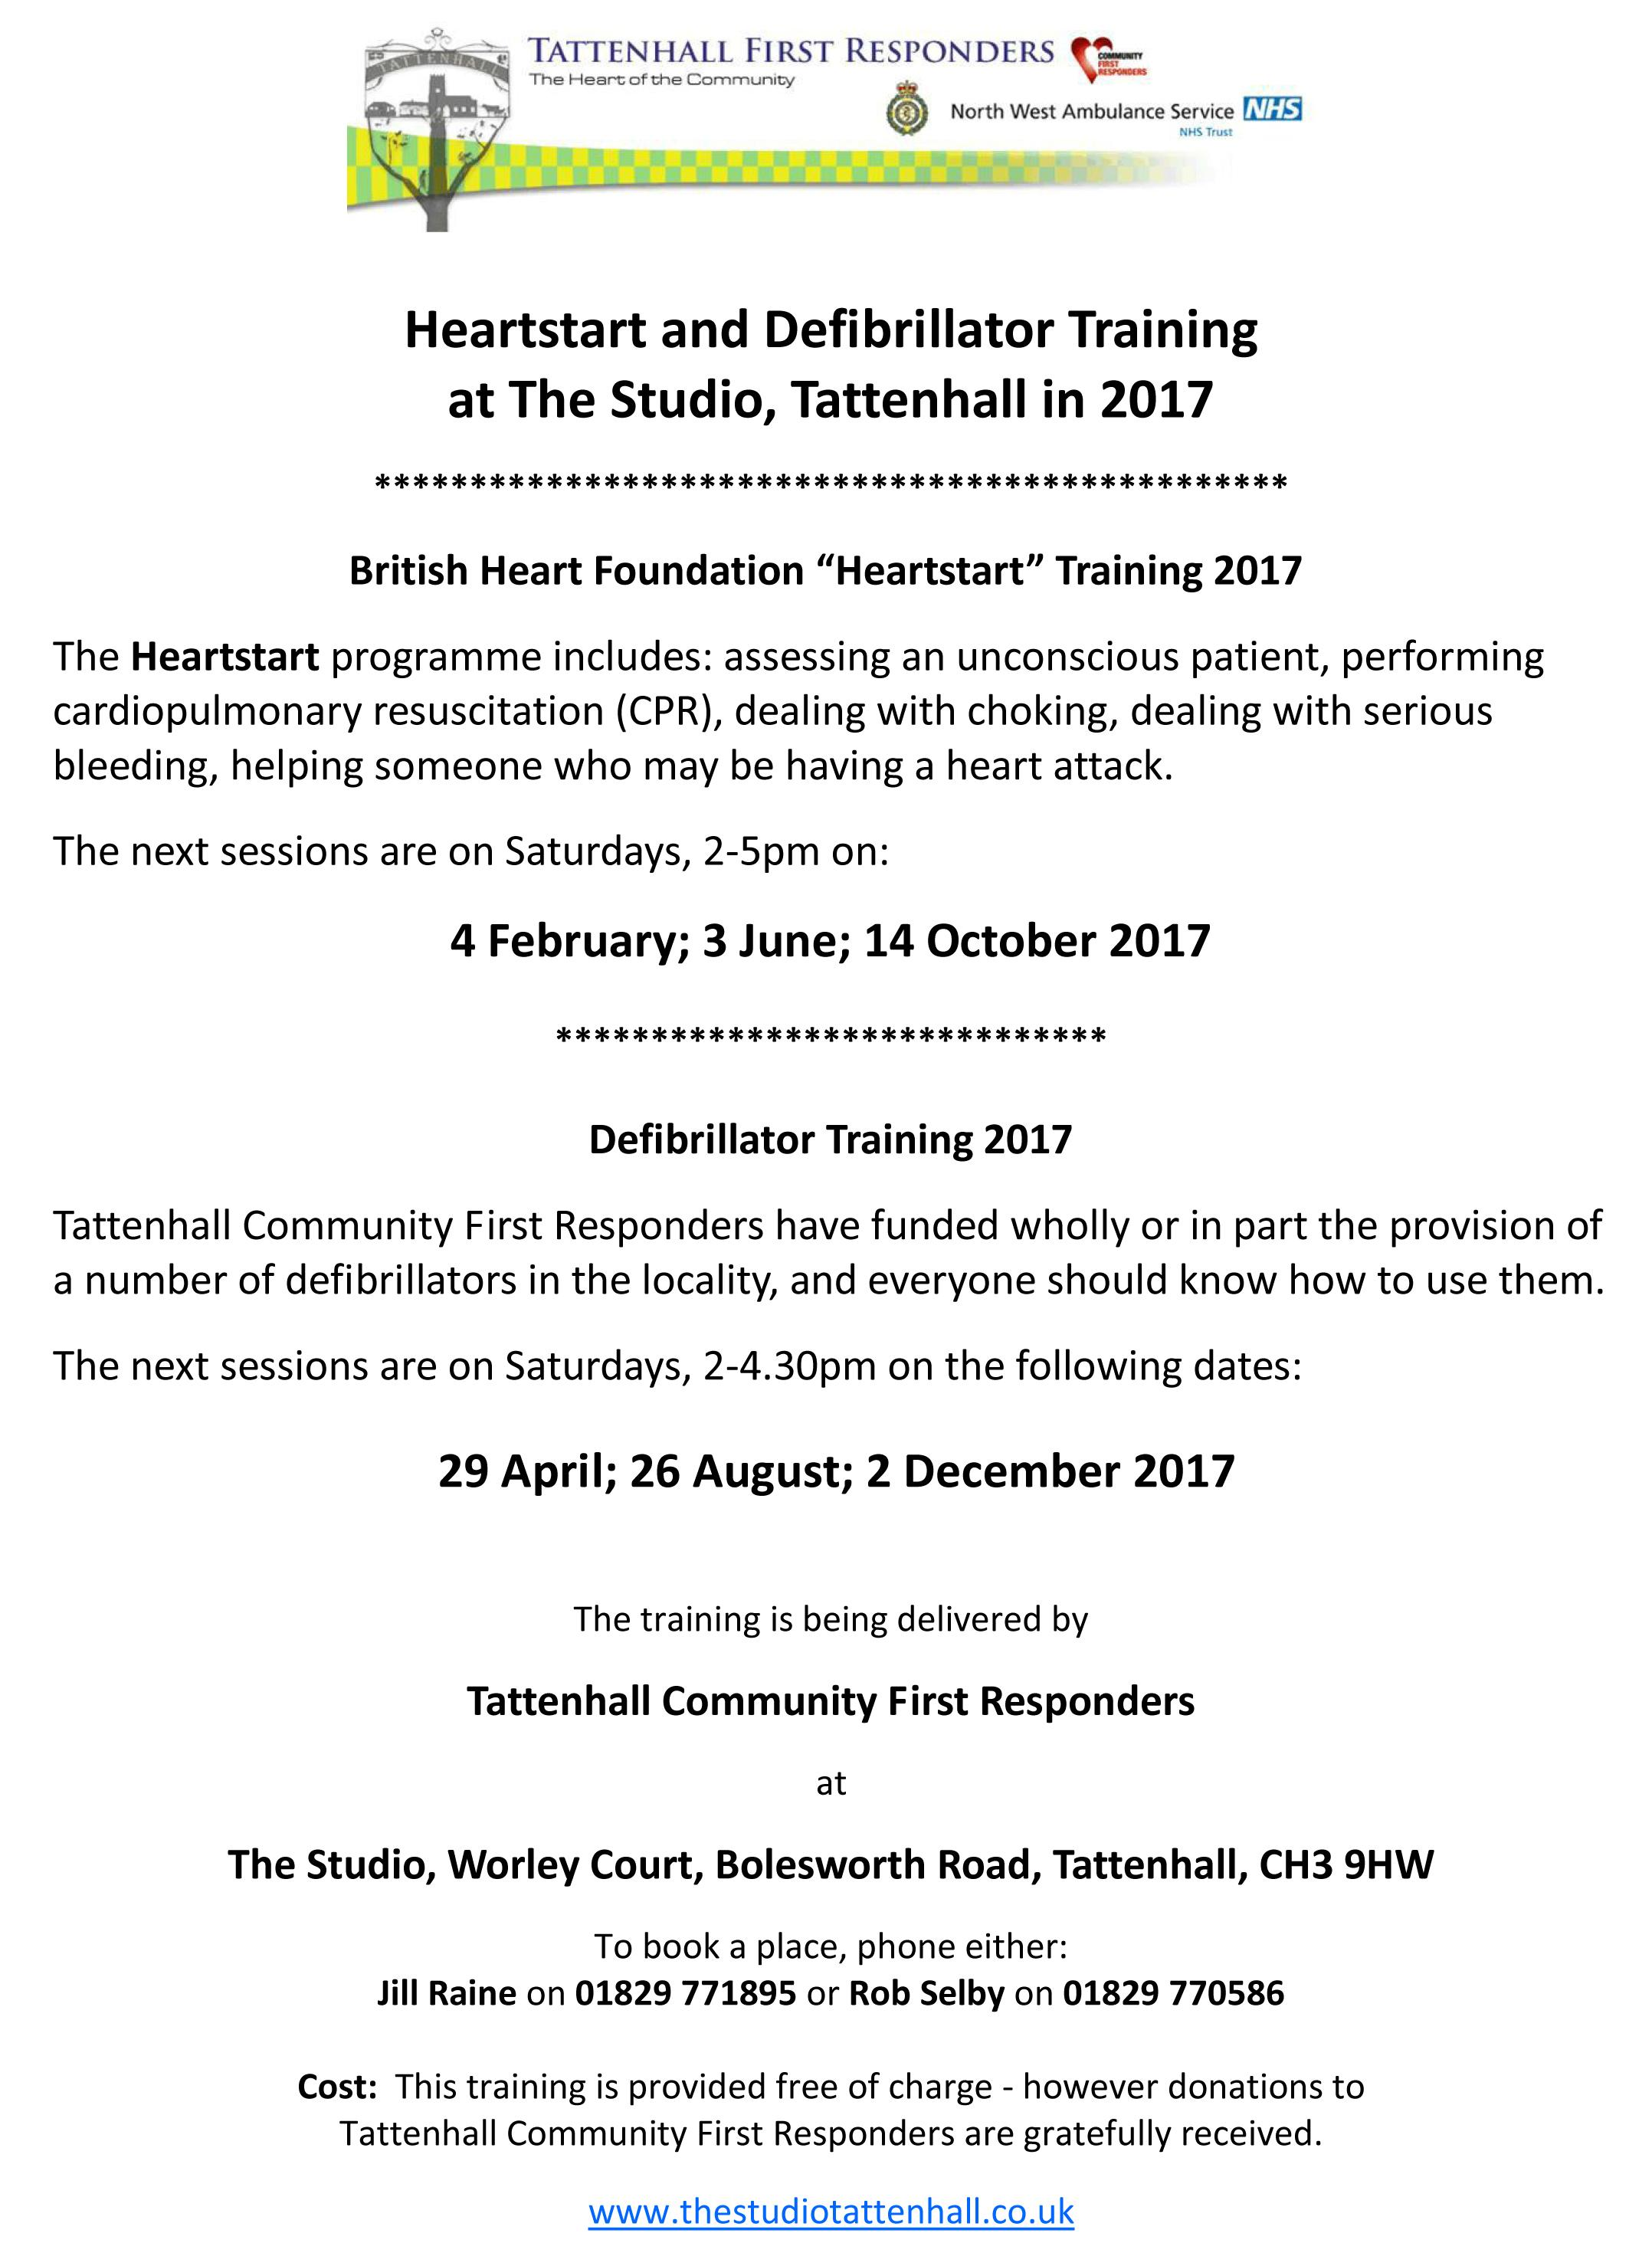 Heartstart And Defib Training 2017 Poster  1 December 2016